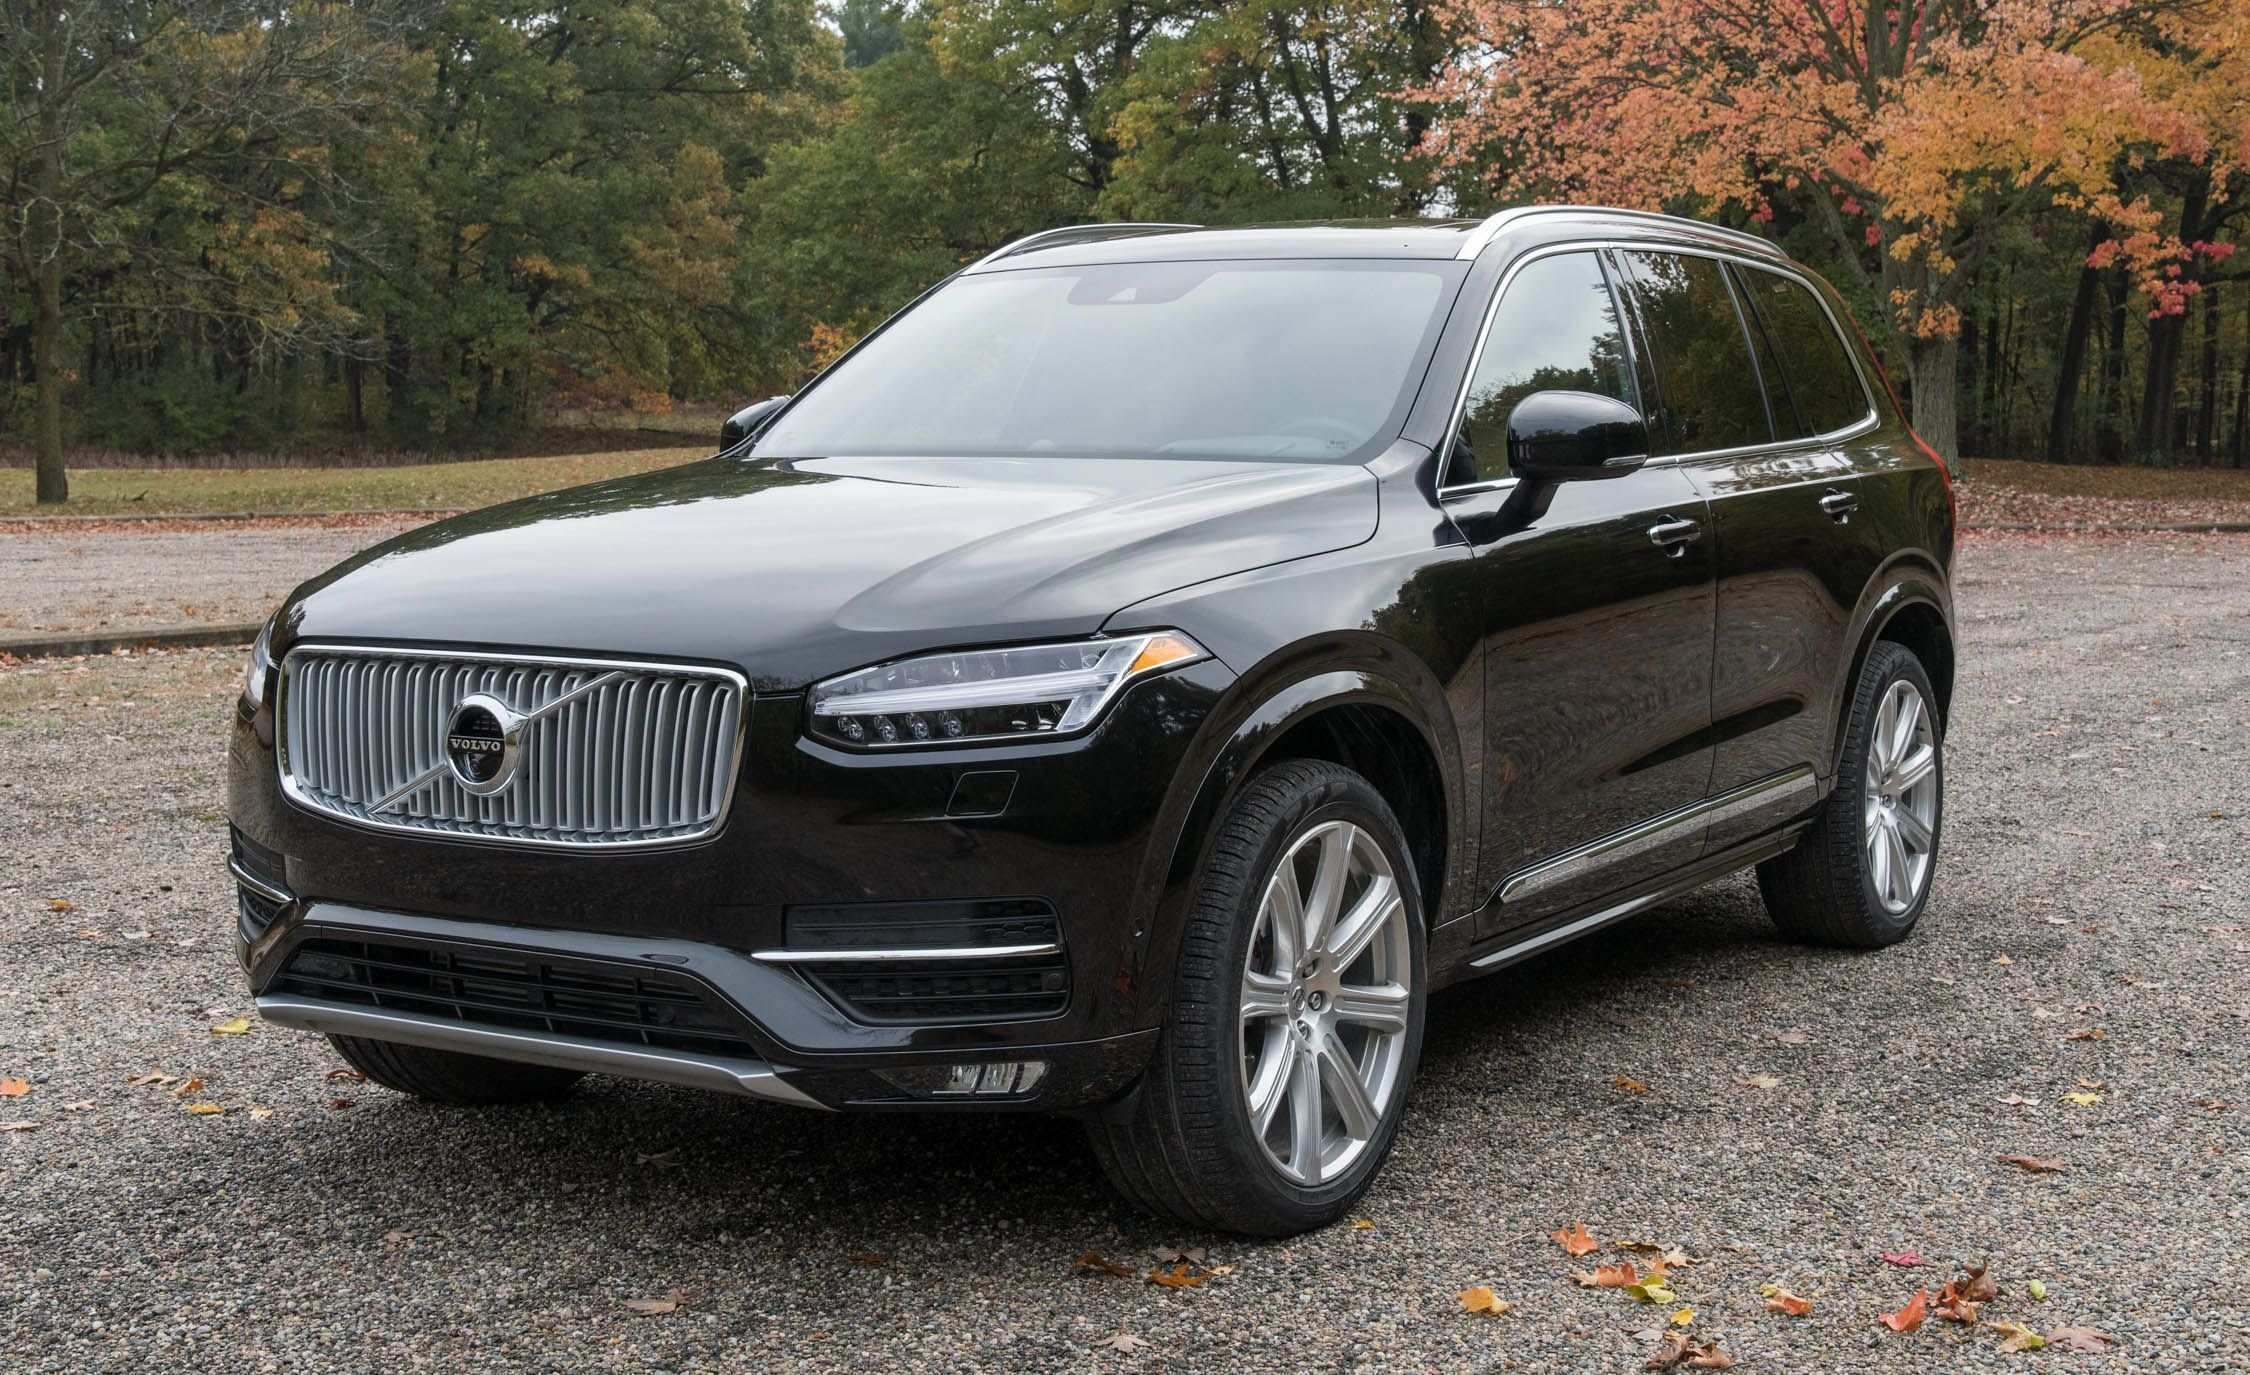 93 All New Best Hybrid Volvo 2019 First Drive Research New by Best Hybrid Volvo 2019 First Drive